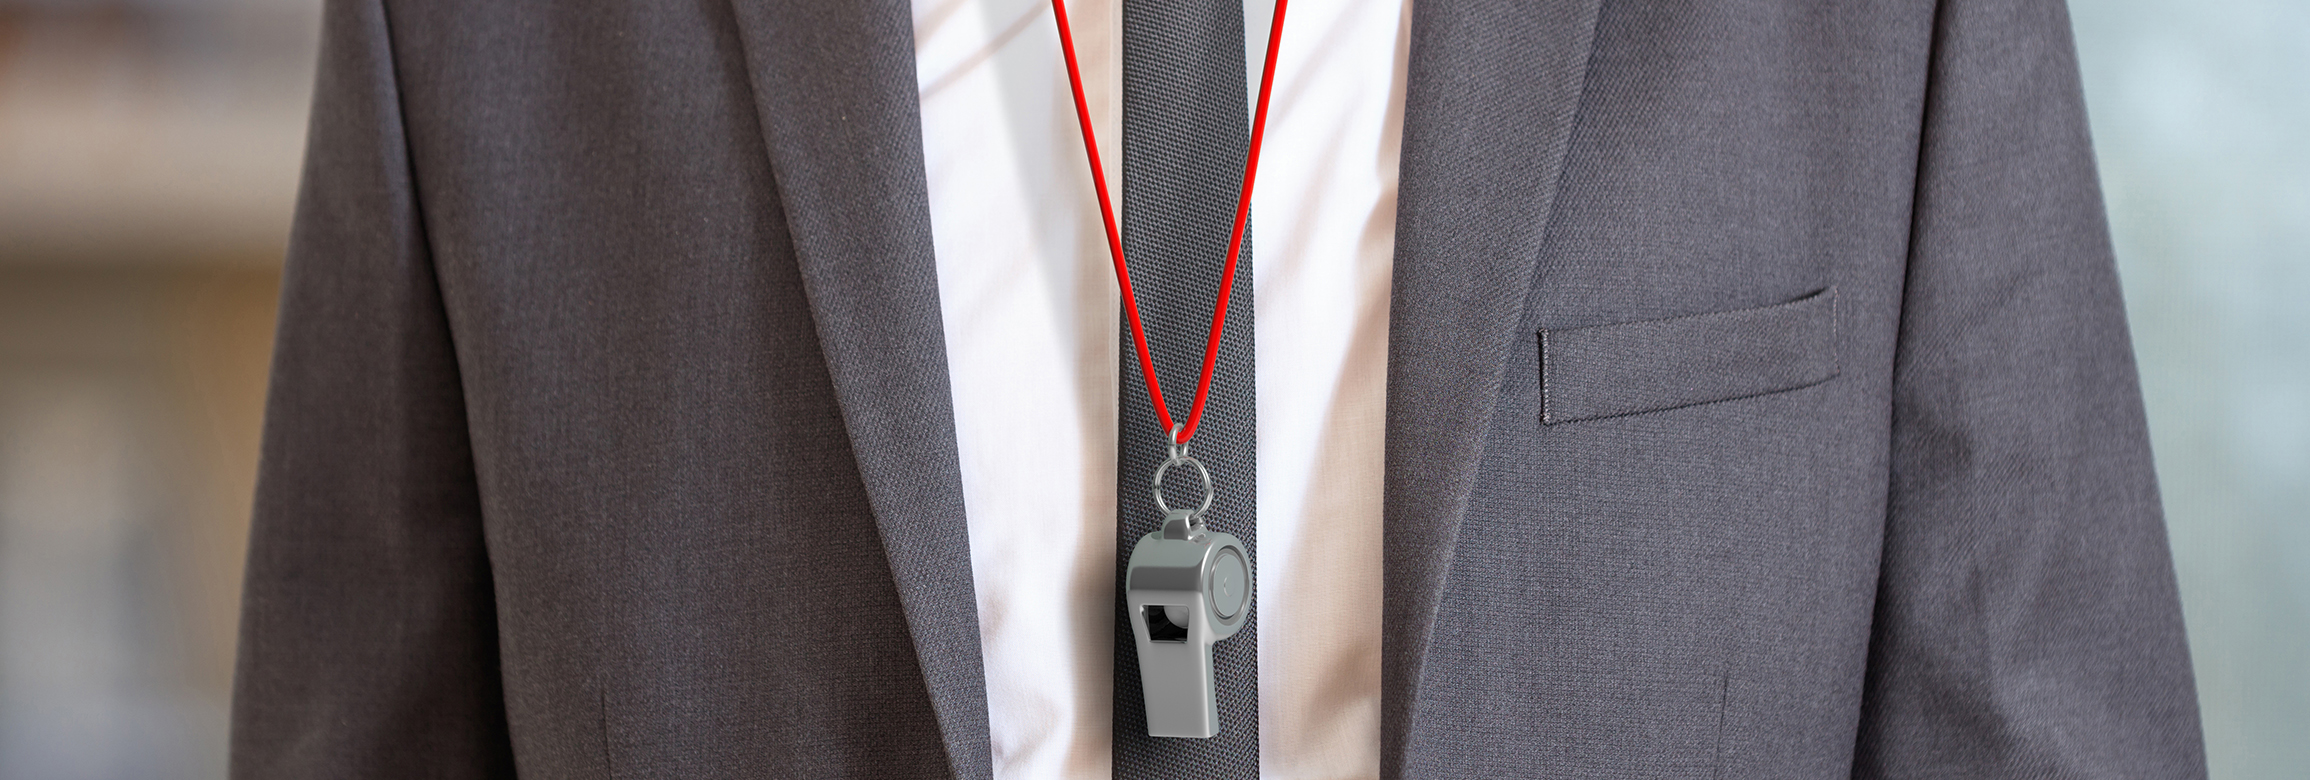 A close up of a man wearing a suit. He is a career coach and there is a whistle with a red lanyard around his neck.